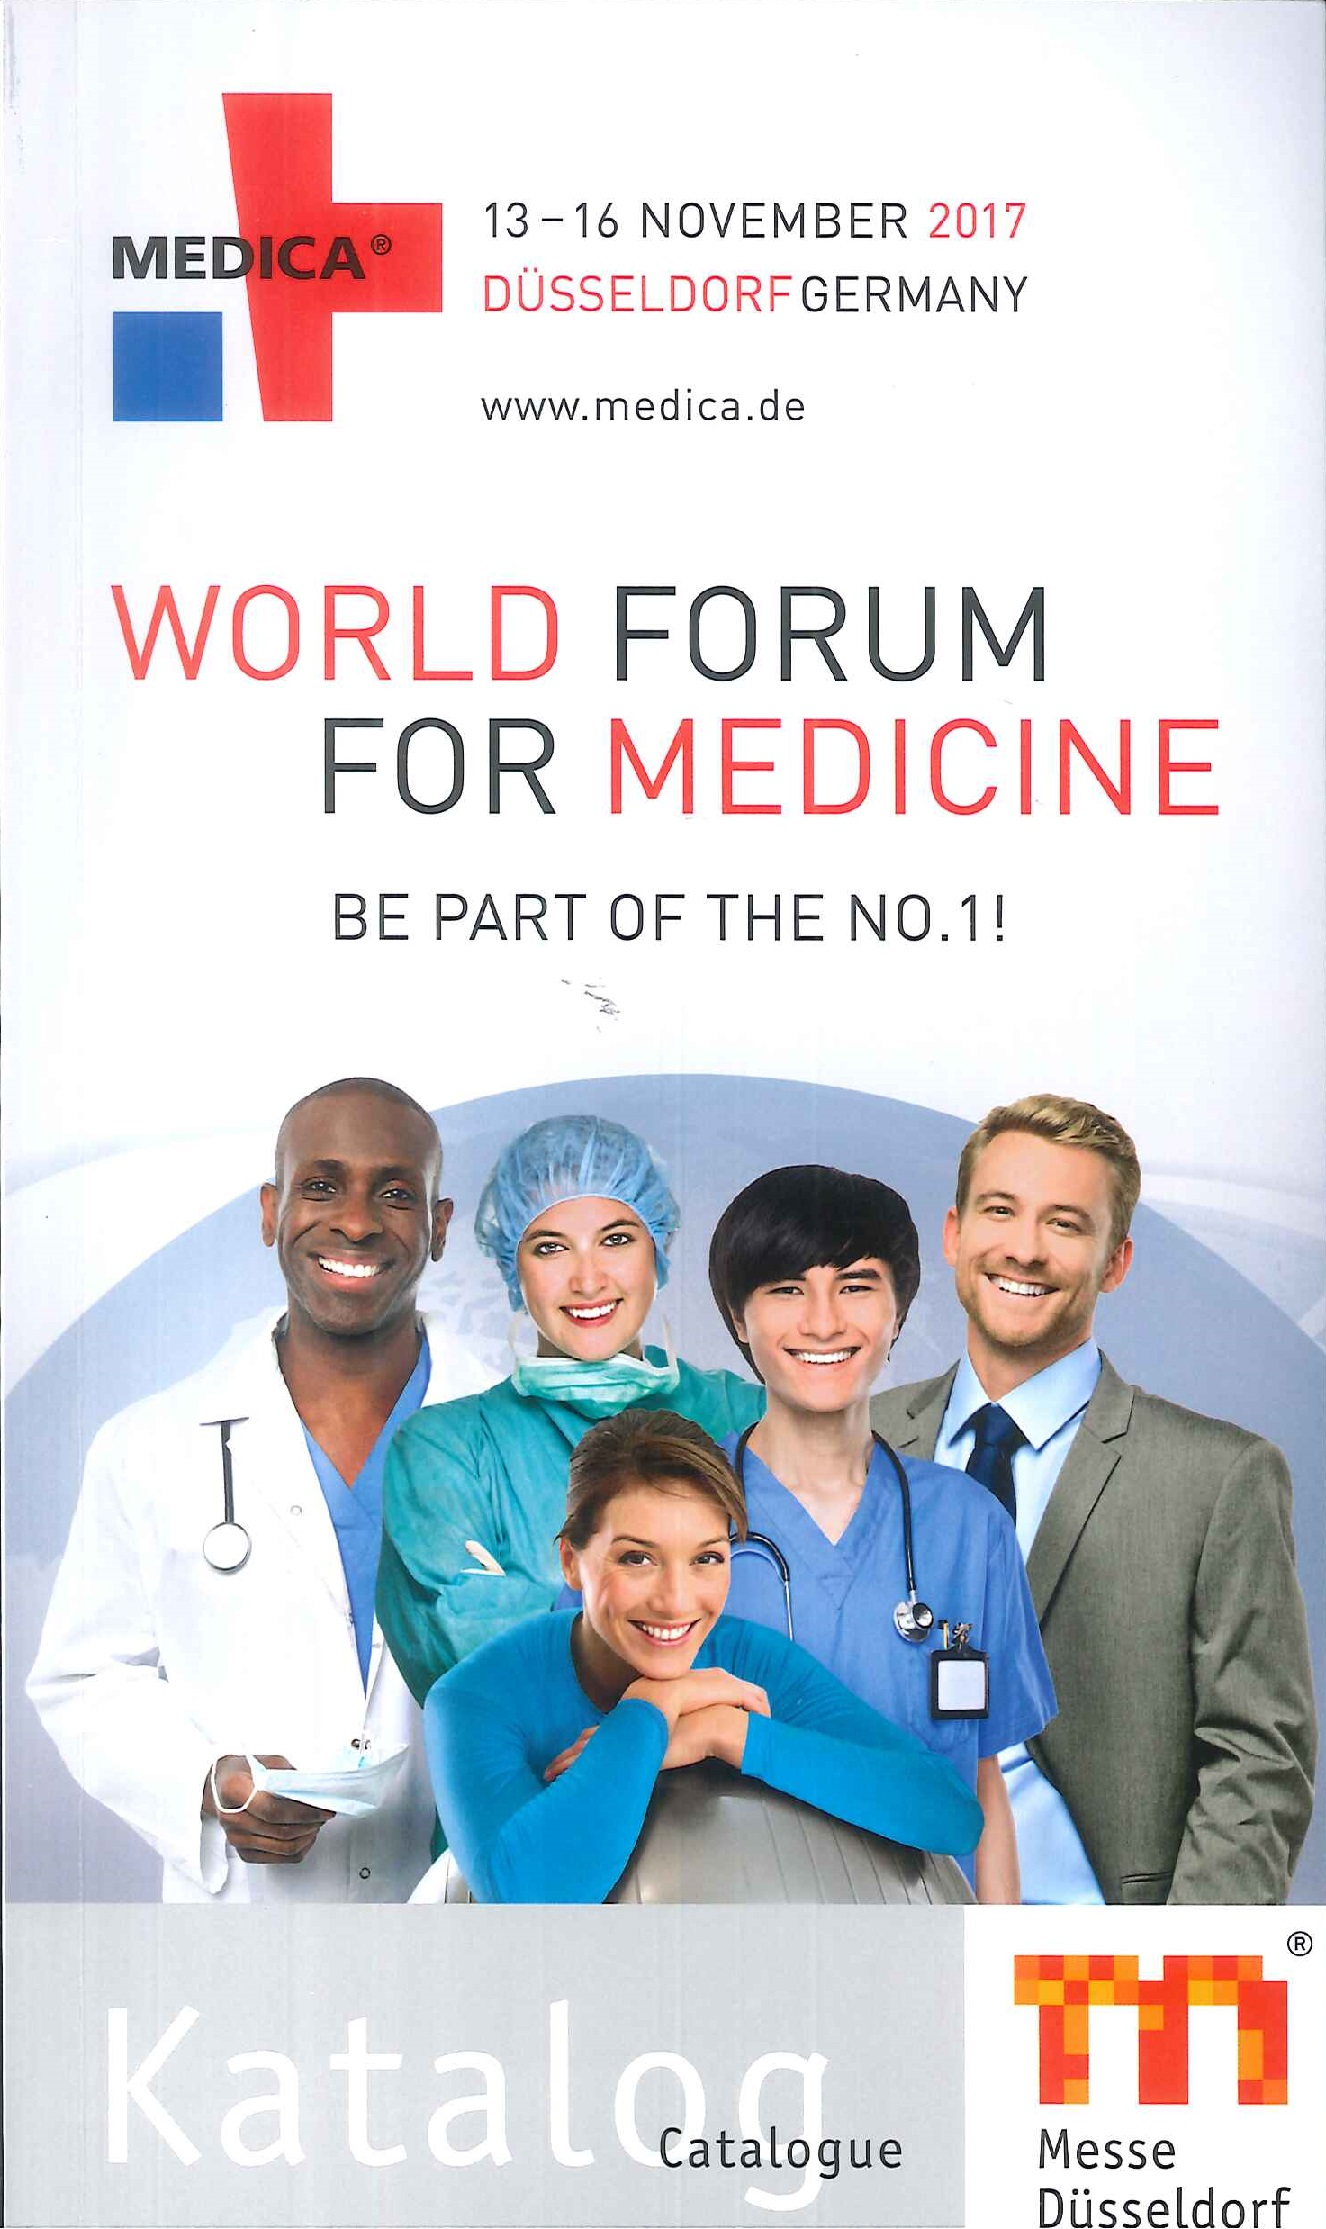 MEDICA.Catalogue.2017:world forum for medicine